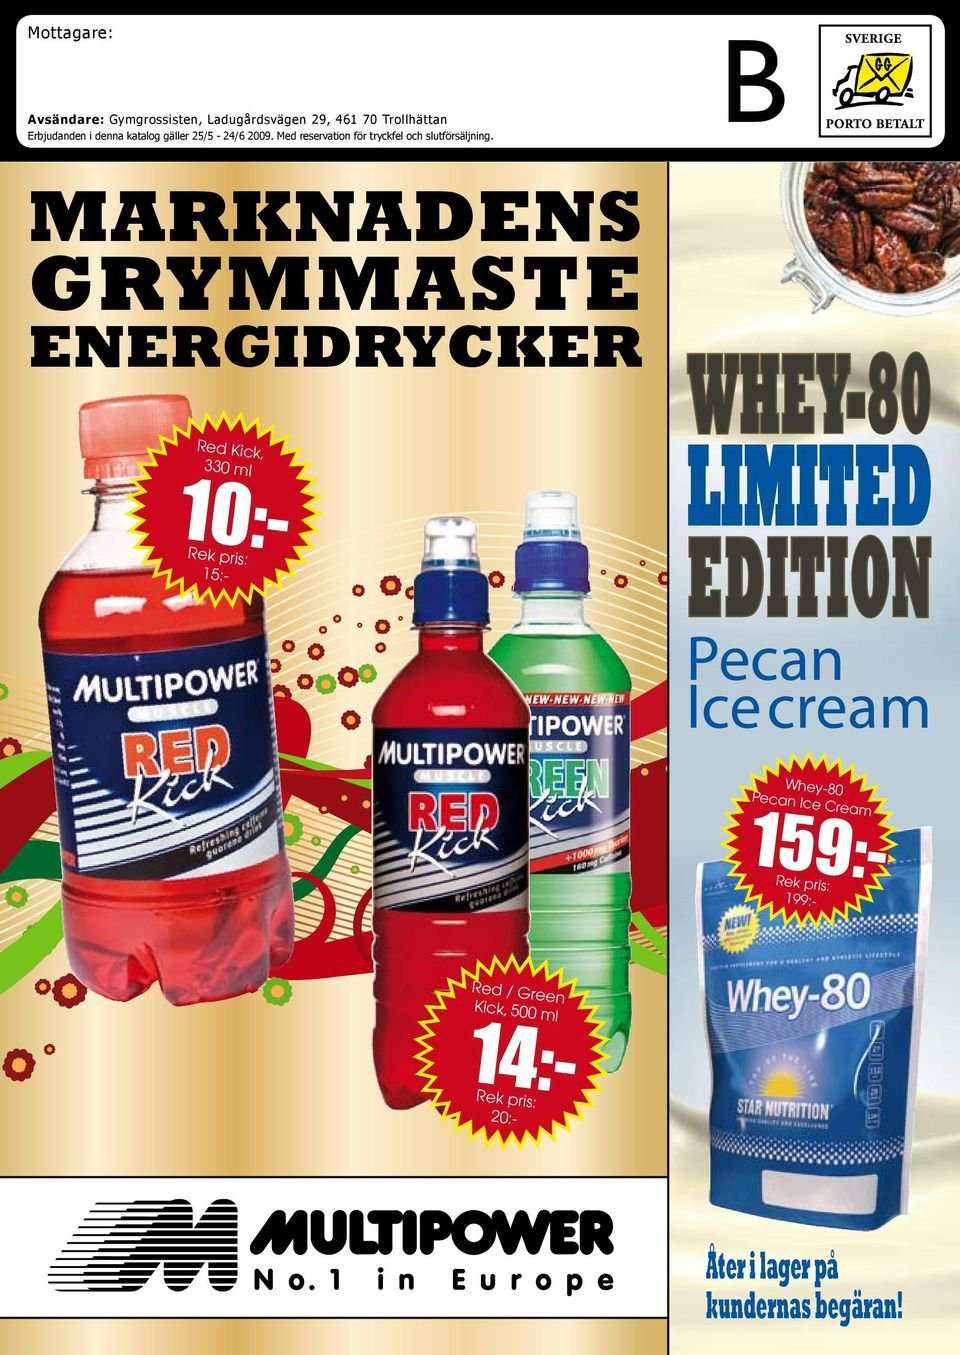 MARKNADENS GRYMMASTE ENERGIDRYCKER Red Kick, 330 ml 20:- 10:- WHEY-80 LIMITED EDITION Pecan Ice